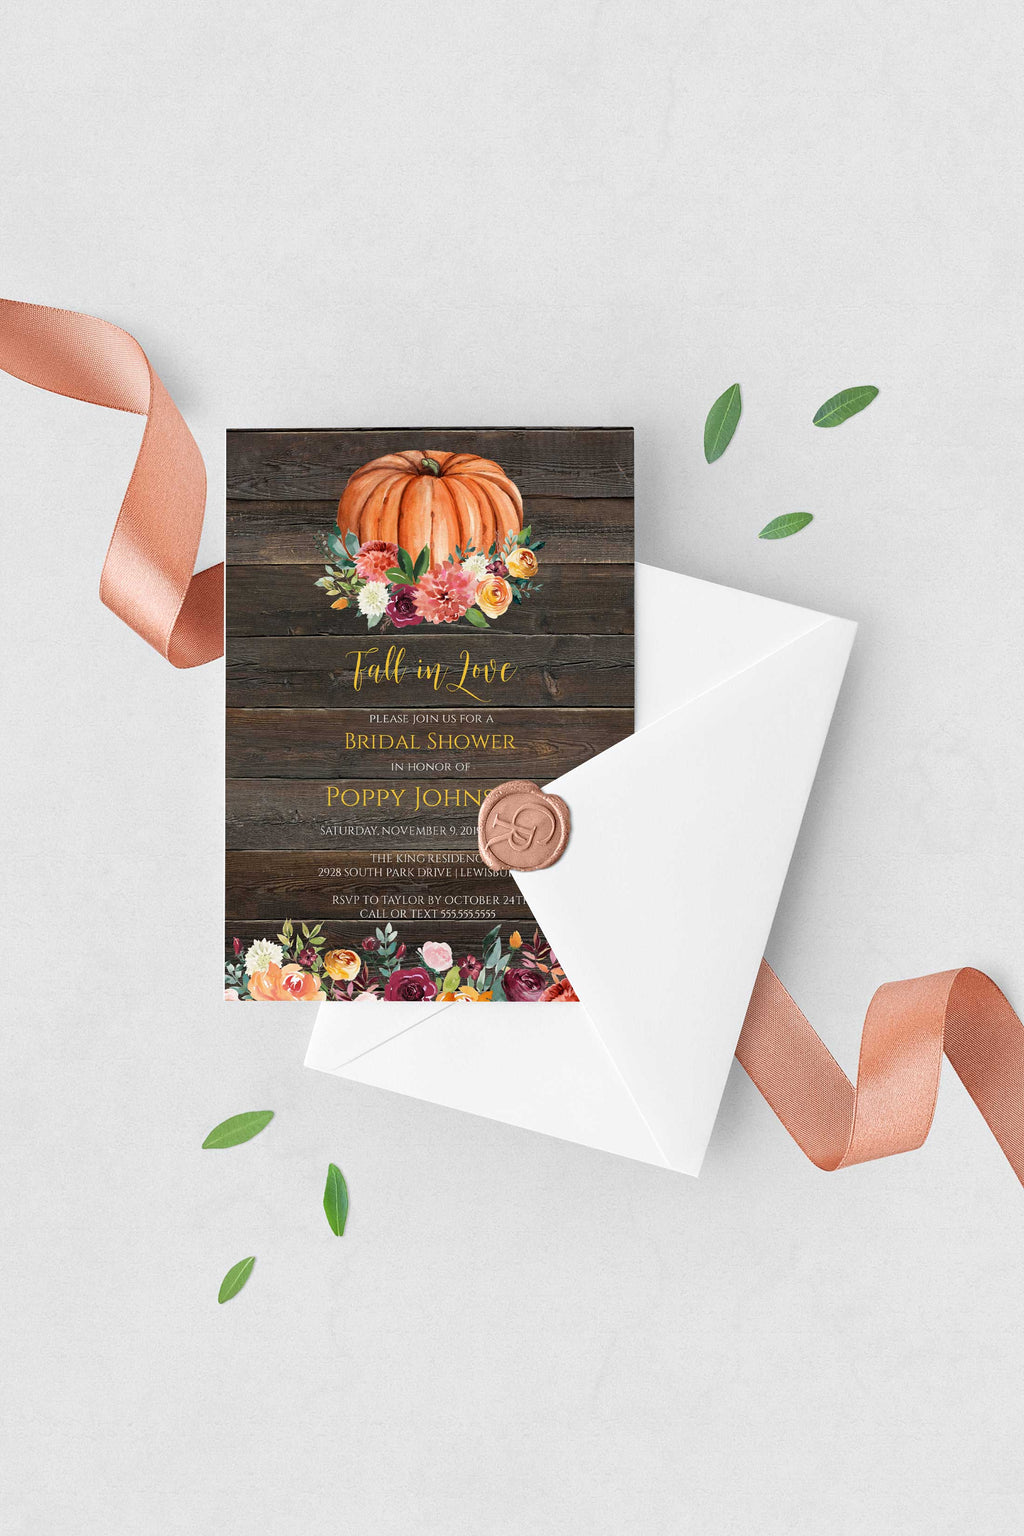 Paprika Rustic Fall Pumpkin Bridal Shower Invitation